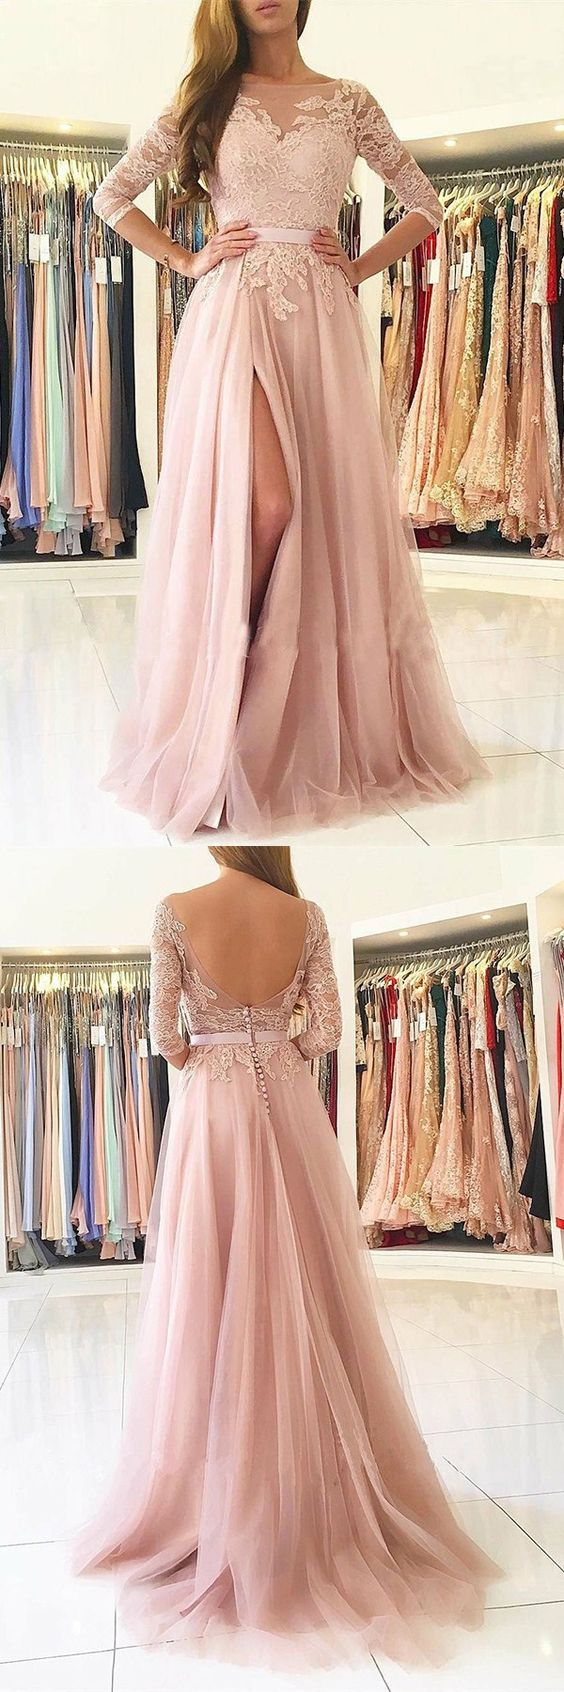 A-Line Bateau Long Sleeves Sweep Train Pink Tulle Prom Dress with Appliques M1595